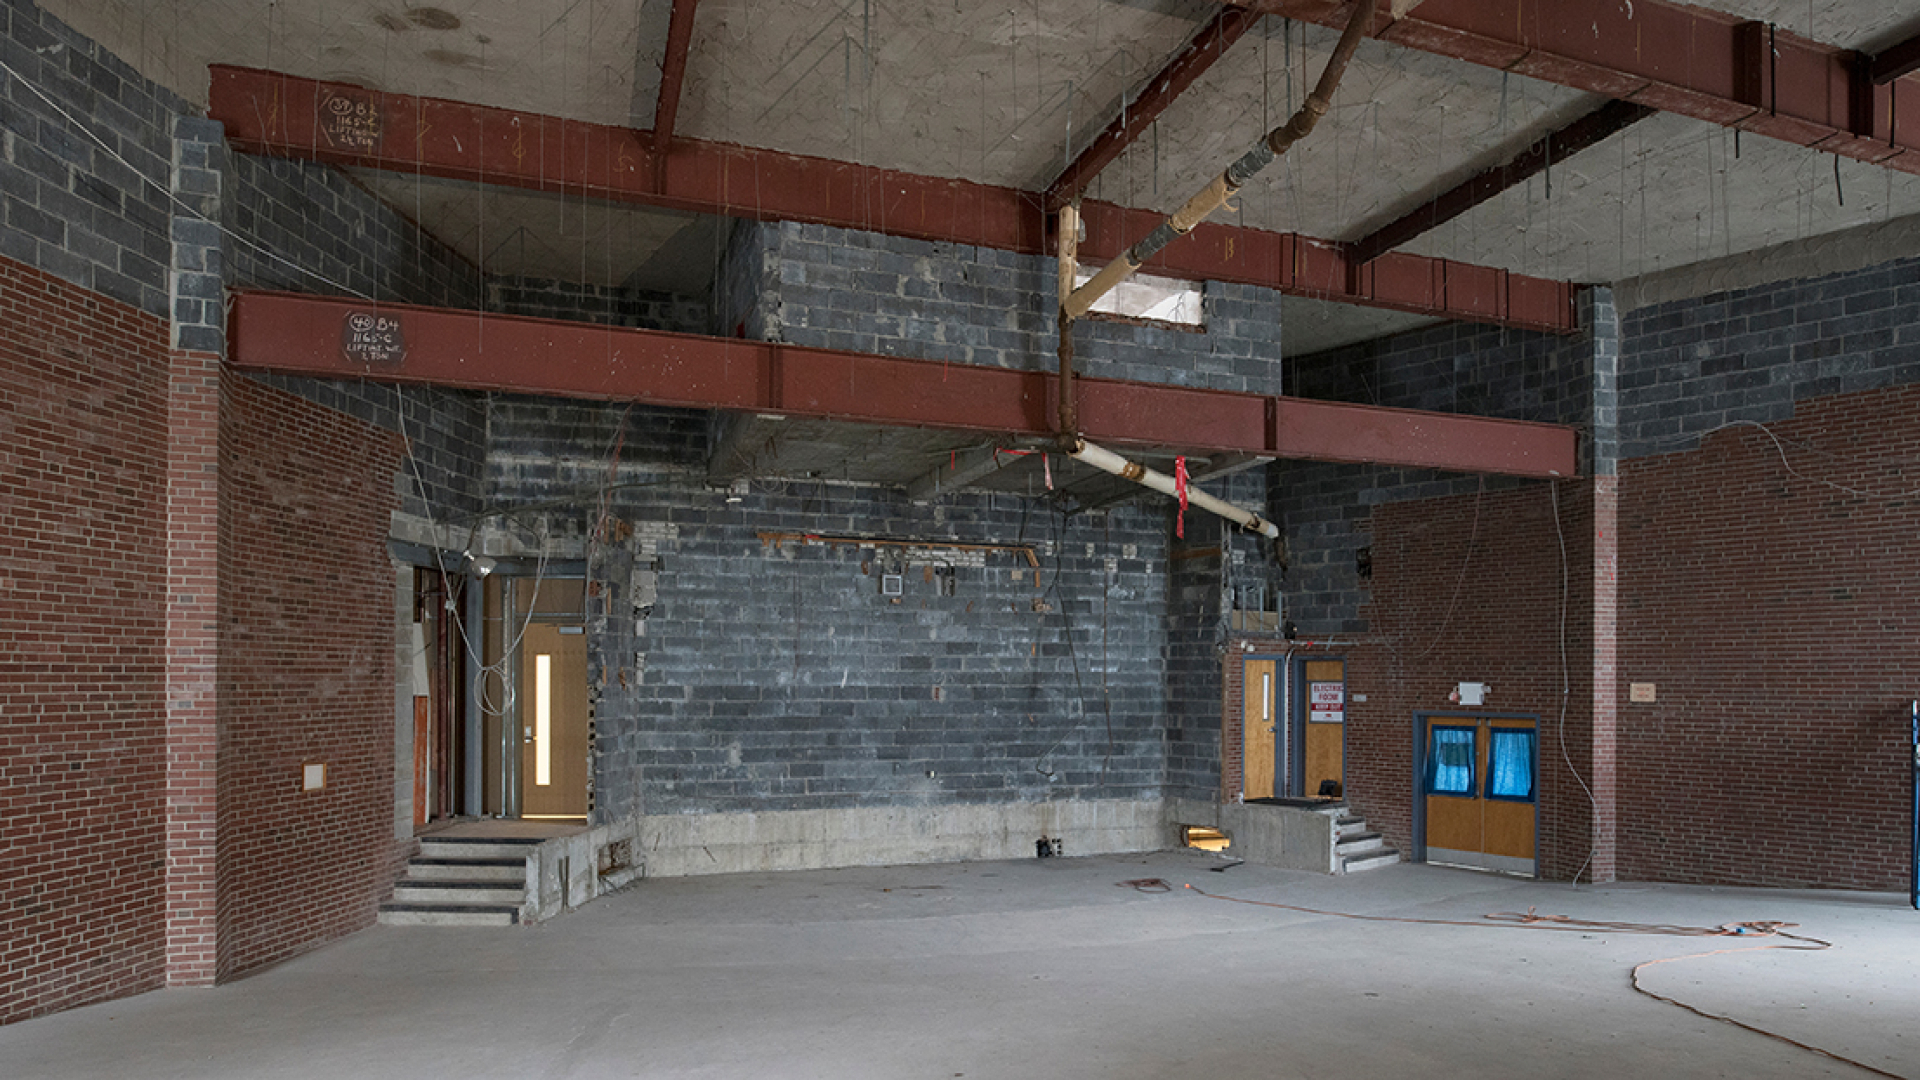 The New Carney Family Auditorium to open in Fall 2019